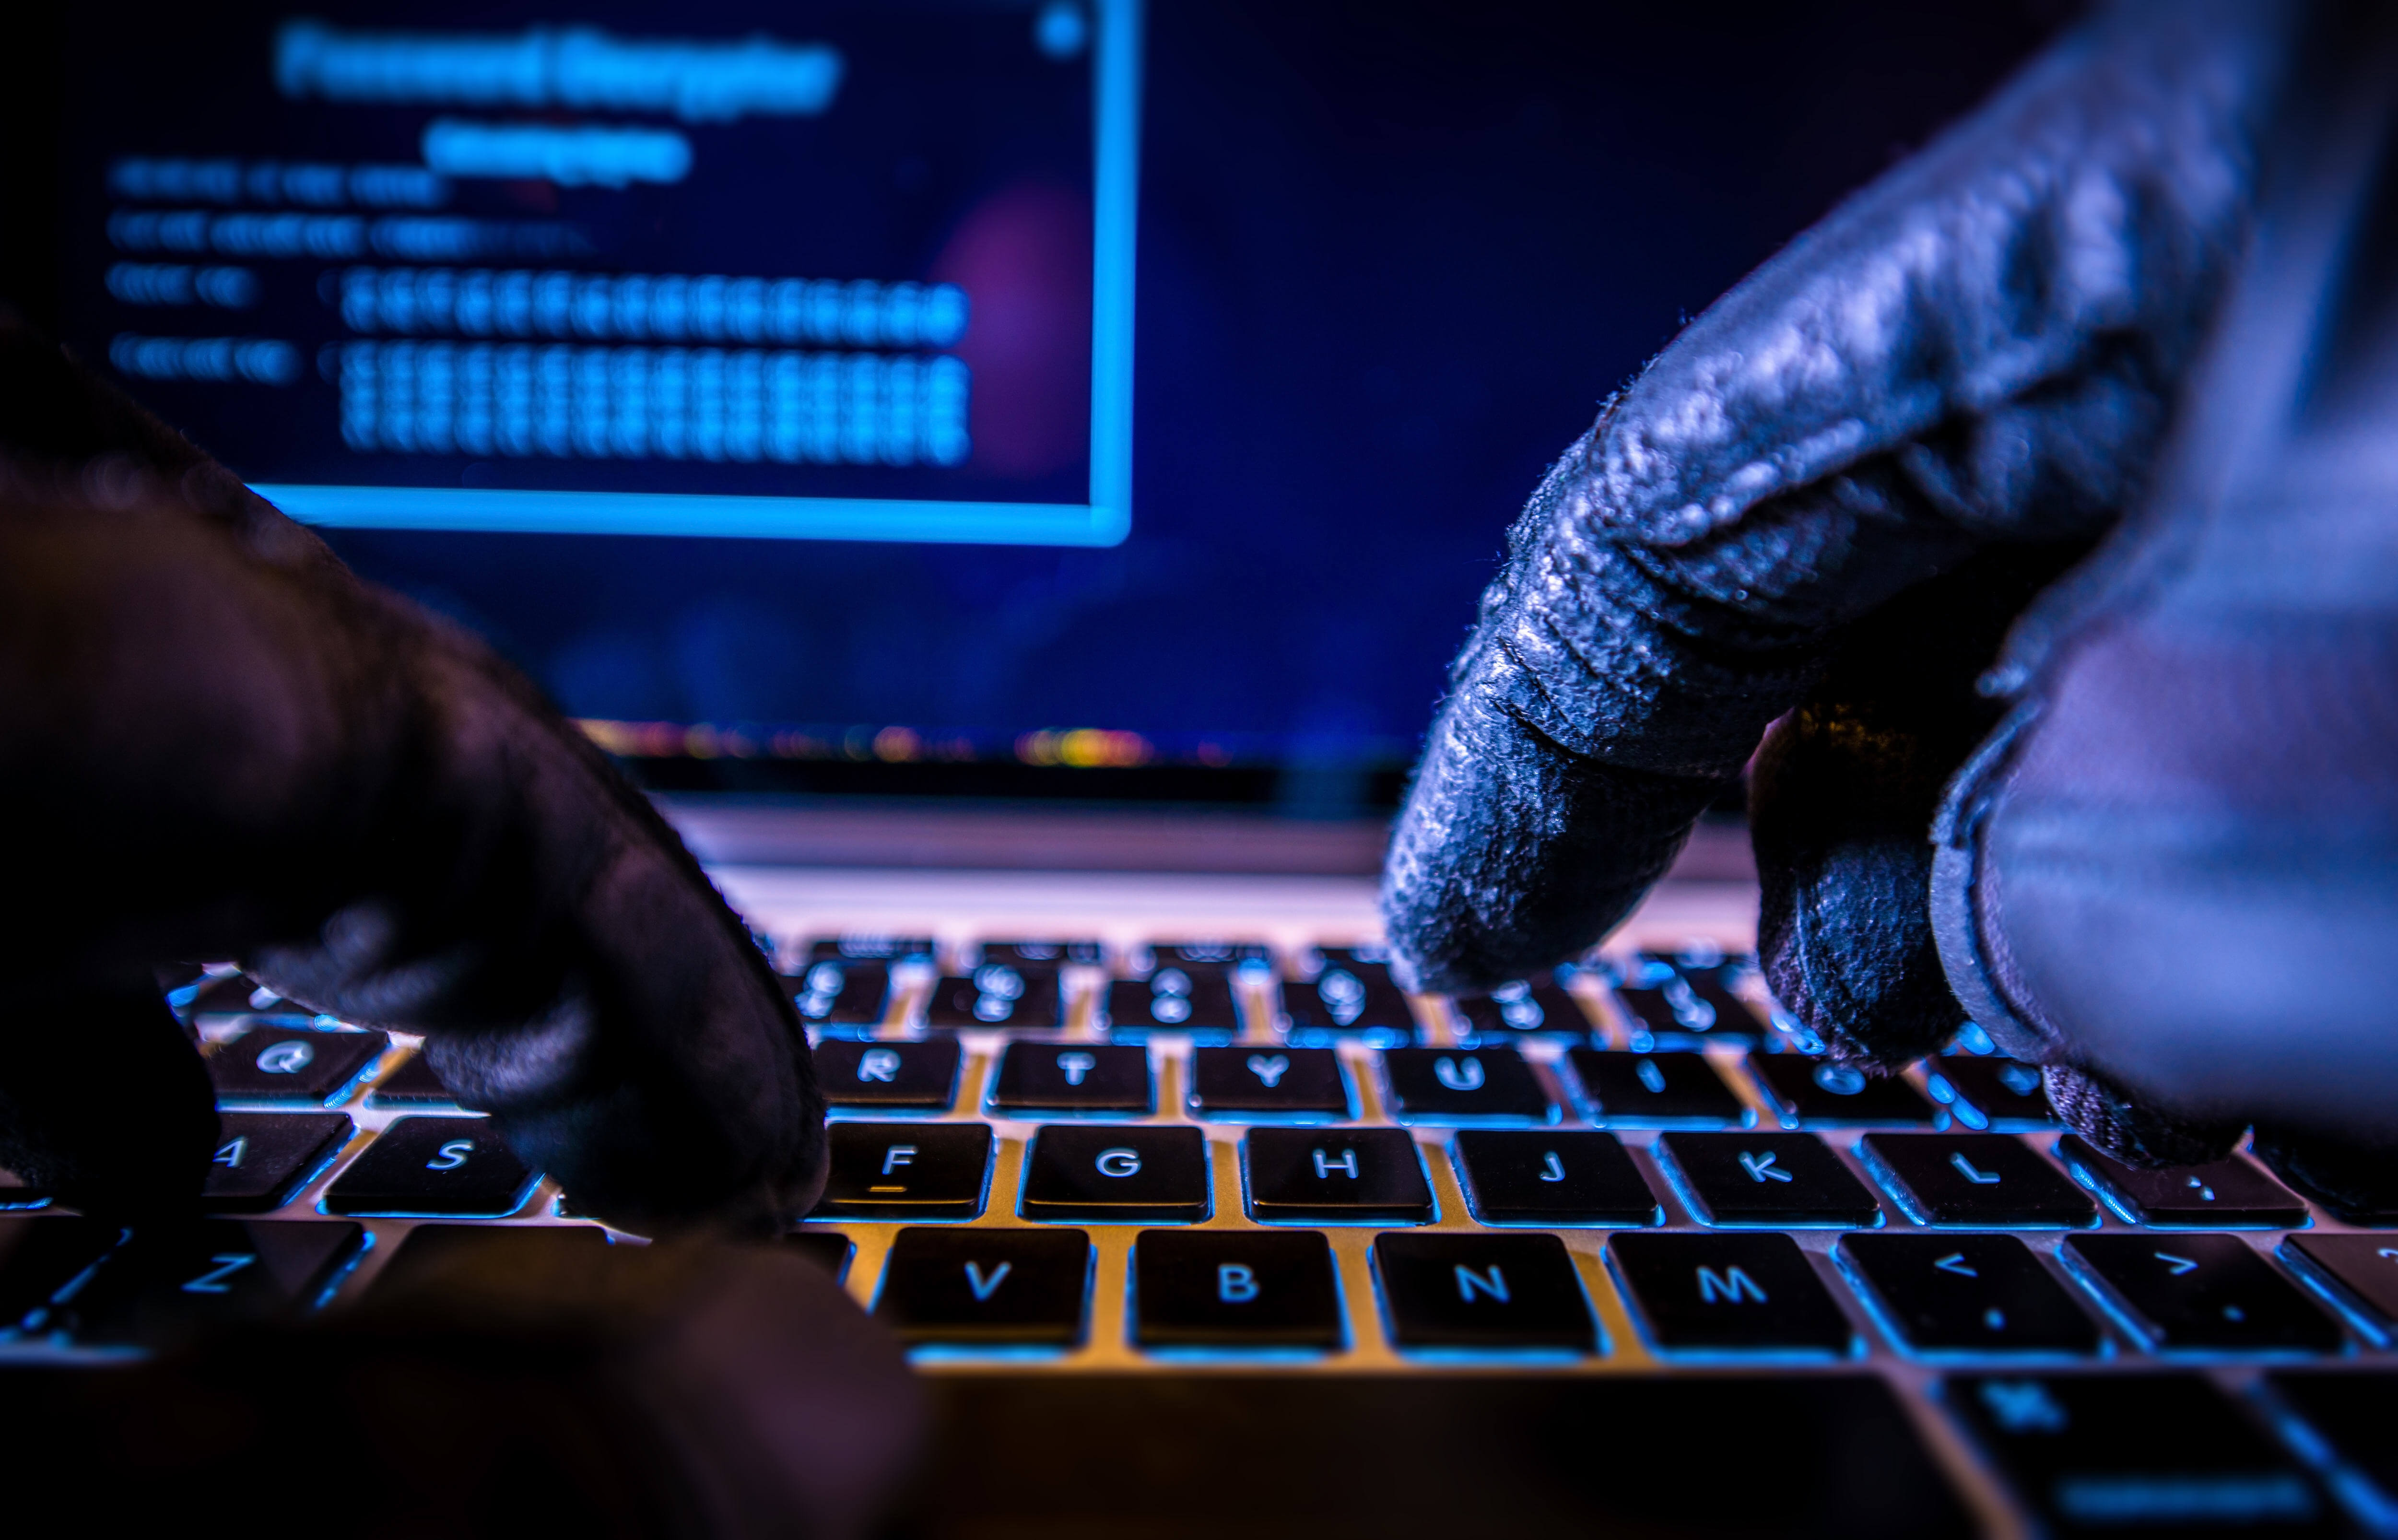 Payments System Hacking. Online Credit Cards Payment Security Concept. Hacker in Black Gloves Hacking the System, Cyber Attack, Data Breach, Hacker, Data Management, Data Center, Cloud Storage, Tallahassee, Valdosta, Tifton, Albany, Thomasville, Bainbridge, Moultrie, Jacksonville, Dothan, Atlanta